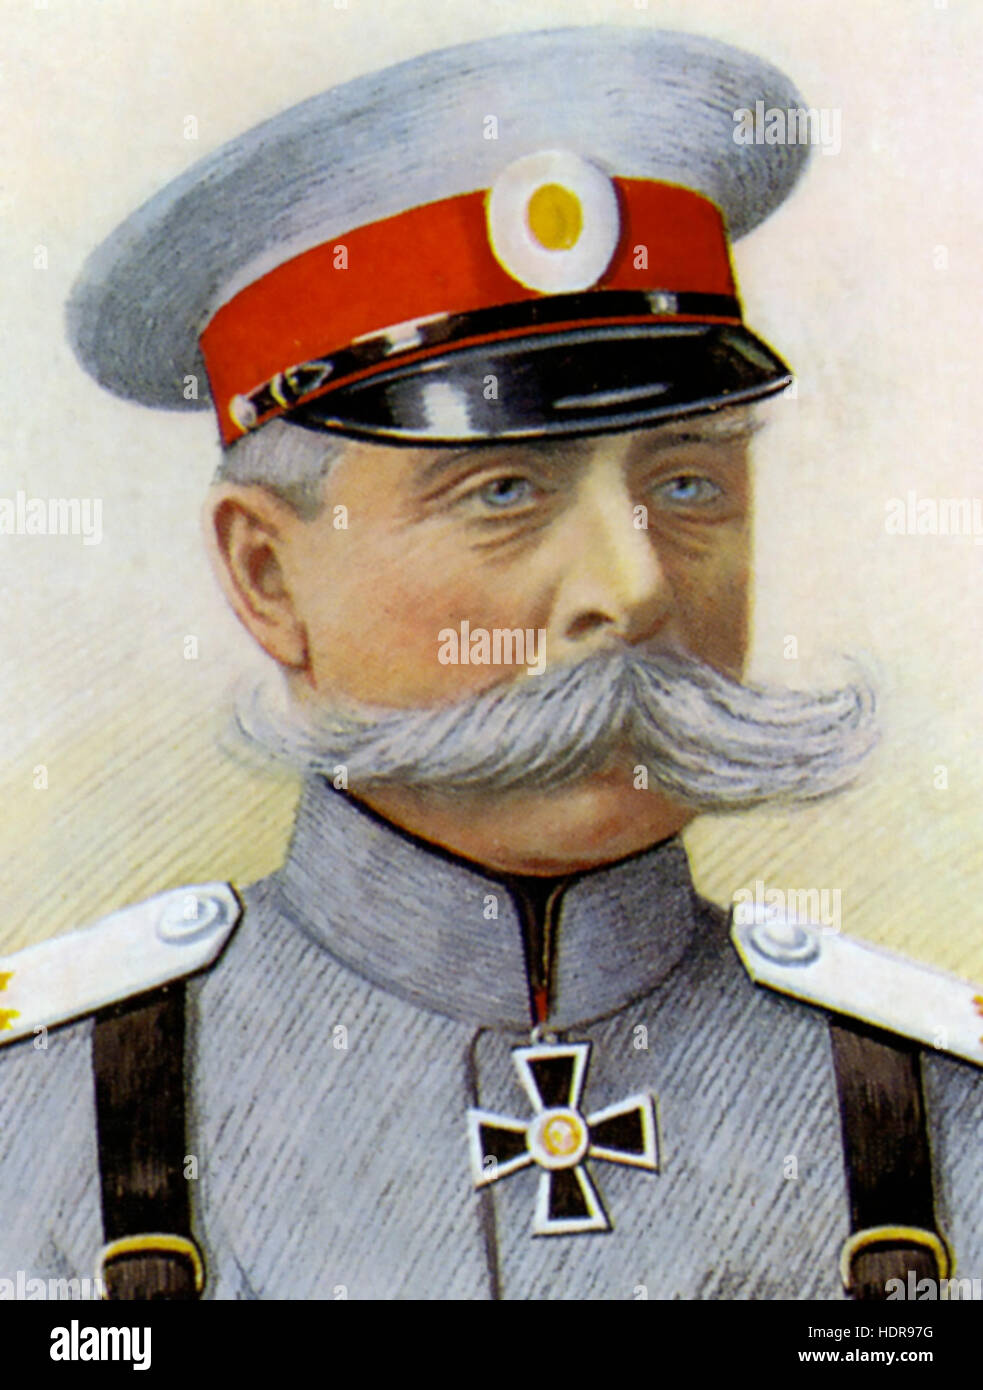 PAUL von RENNENKAMPF (1854-1918) as a General in the Imperial Russian Army - Stock Image